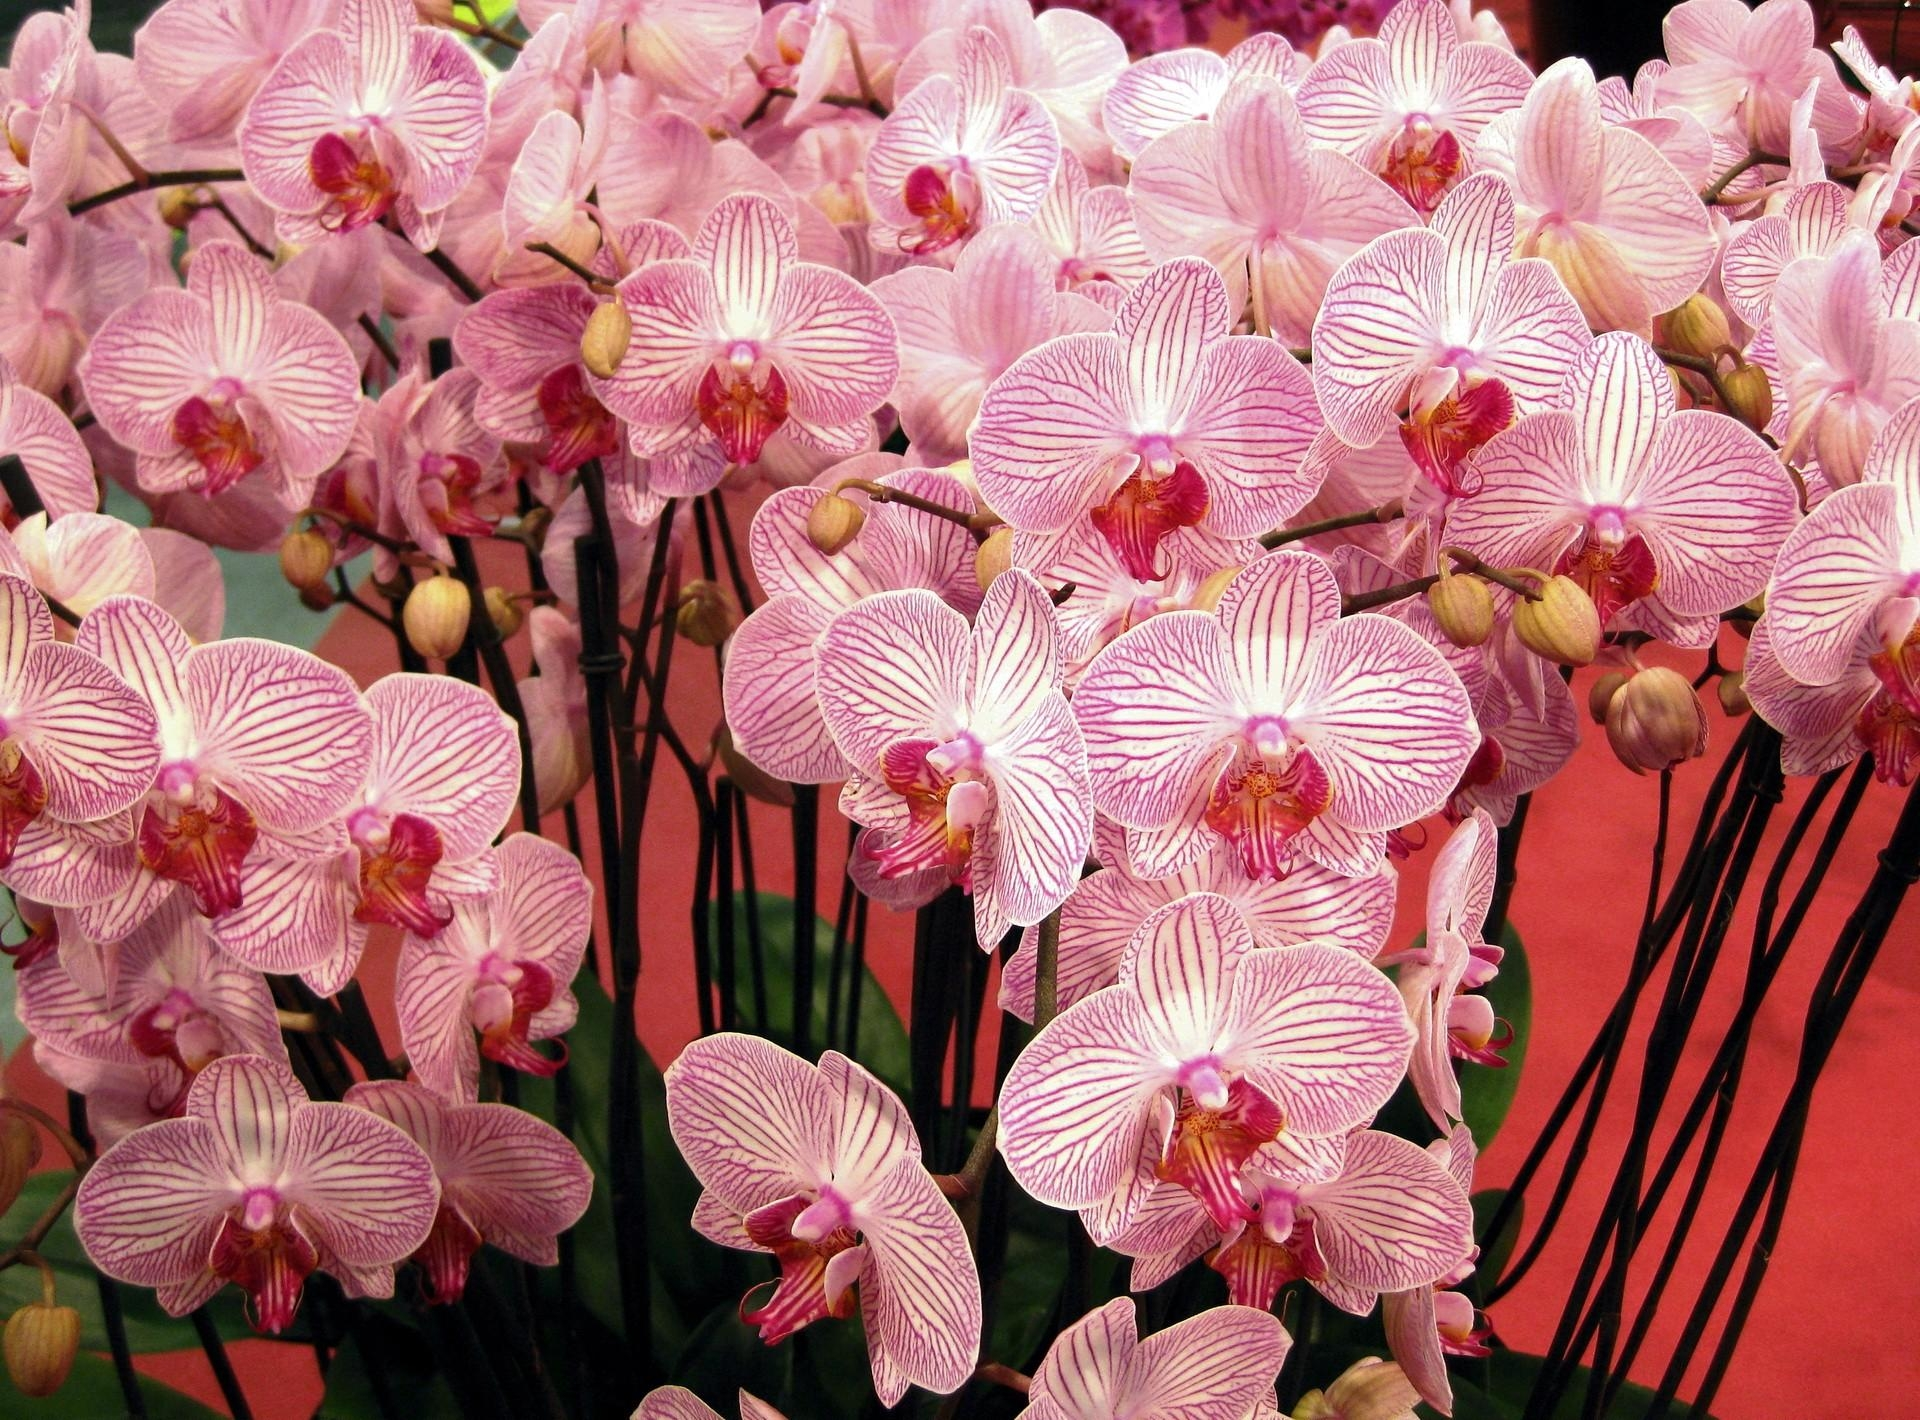 130567 download wallpaper Flowers, Orchids, Branches, Handsomely, It's Beautiful, Bouquet screensavers and pictures for free